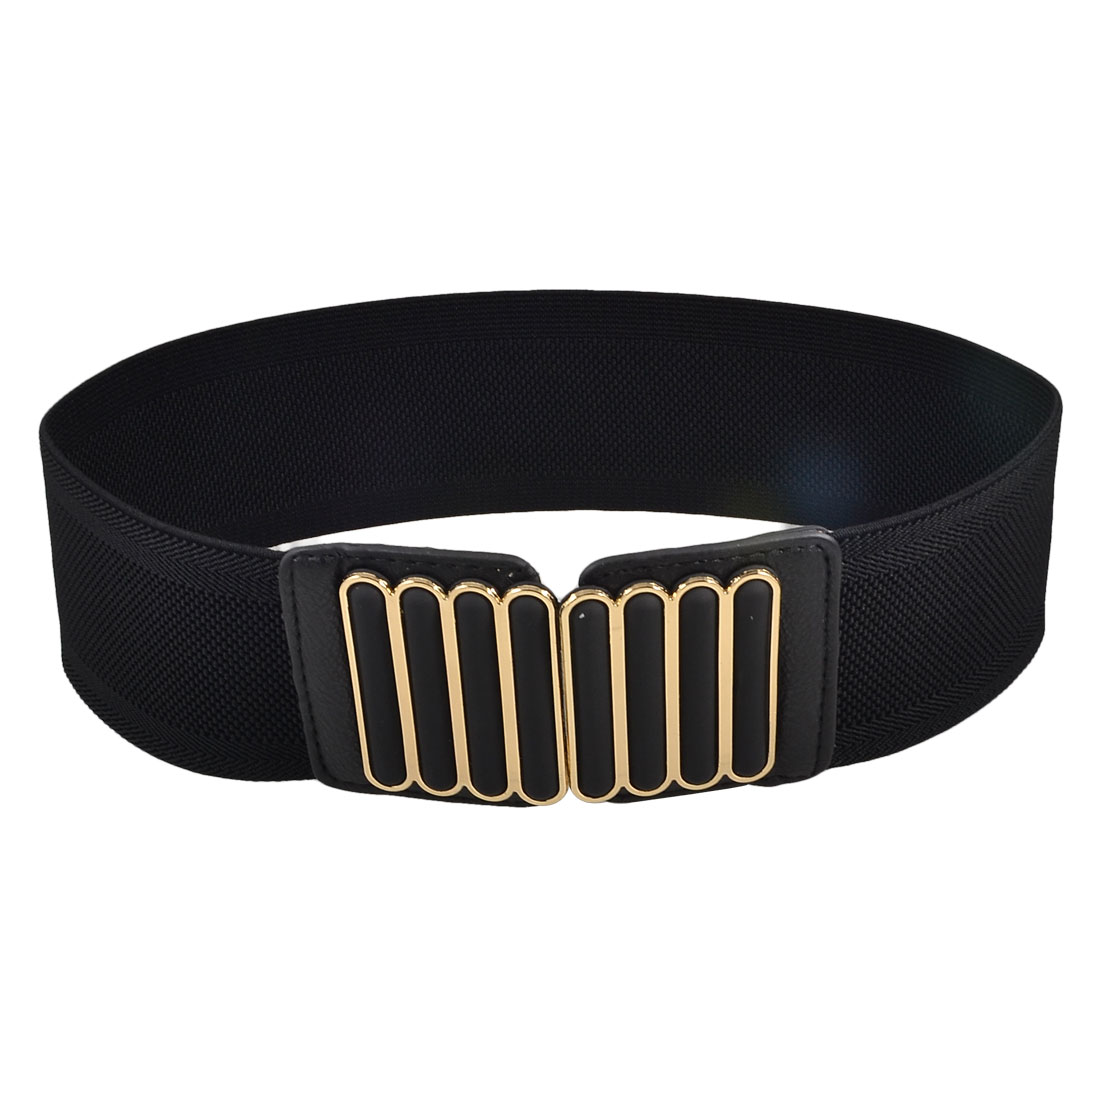 Lady Woman Metal Vertical Bars Accent Black Elastic Band Waist Belt